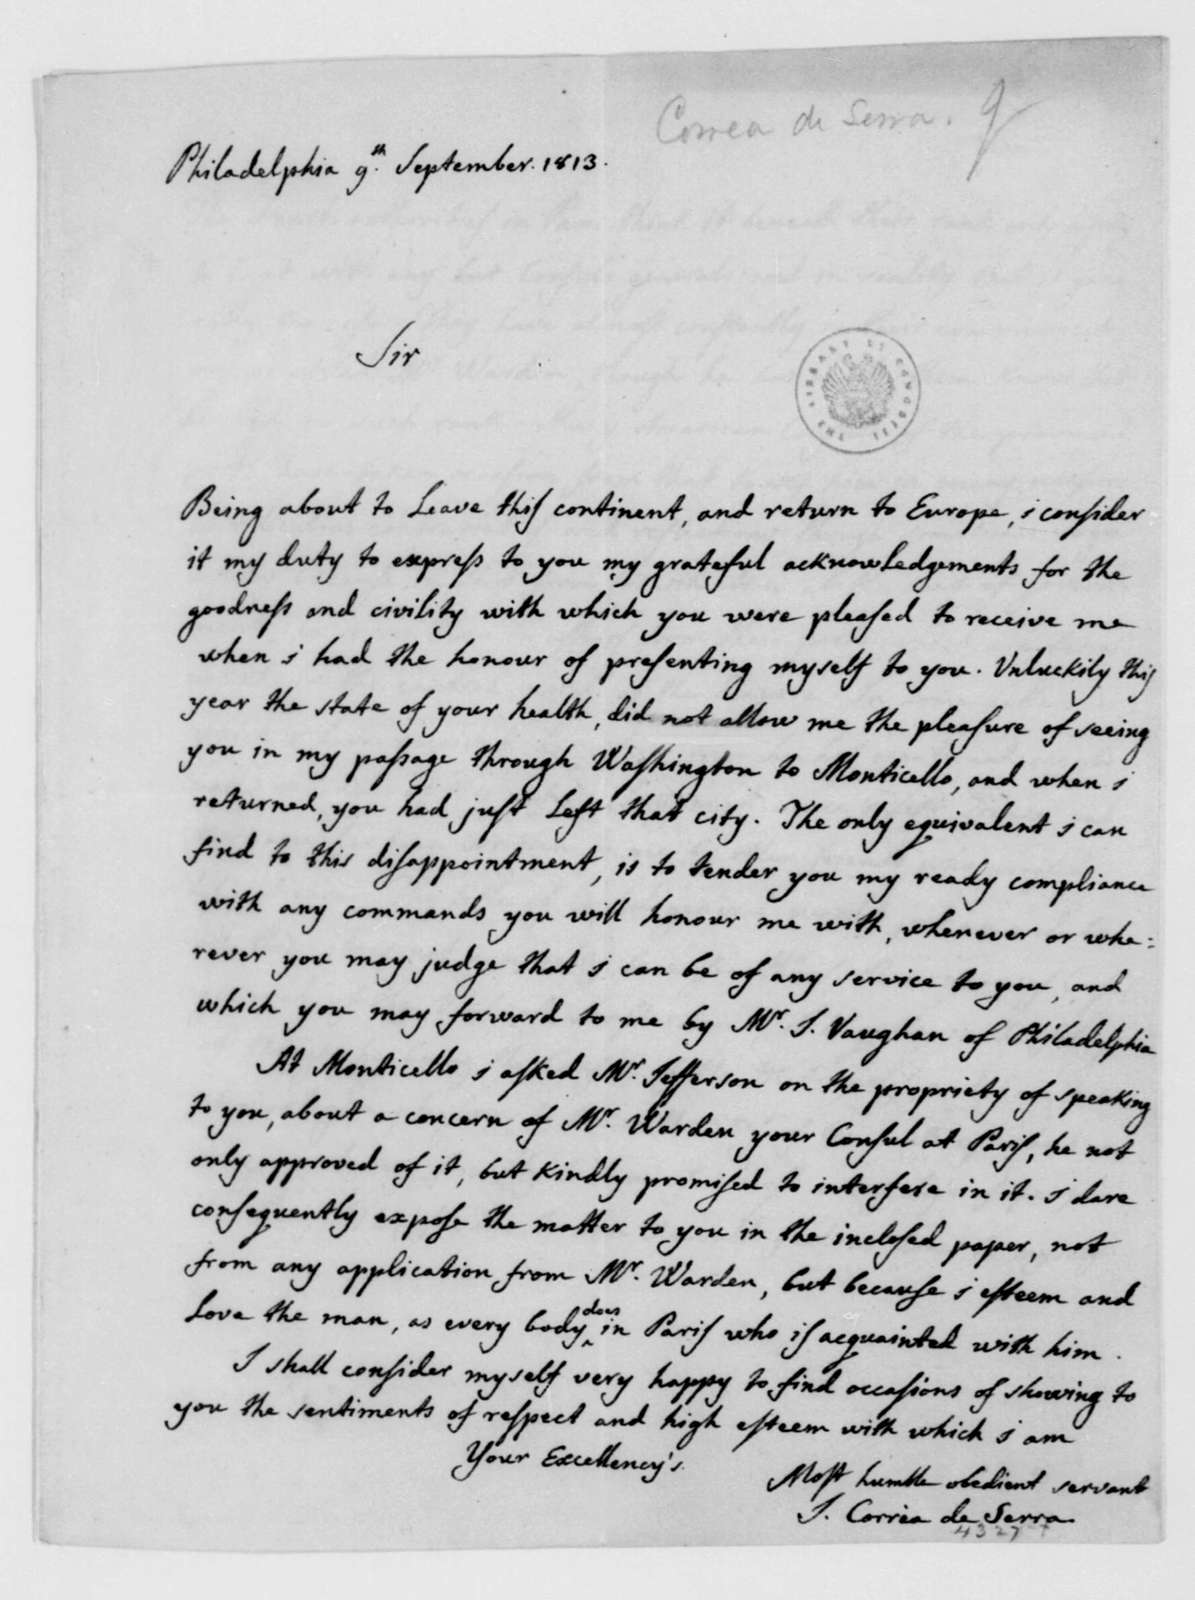 J. Correa de Serra to James Madison, September 9, 1813. Includes note to Consul in France.